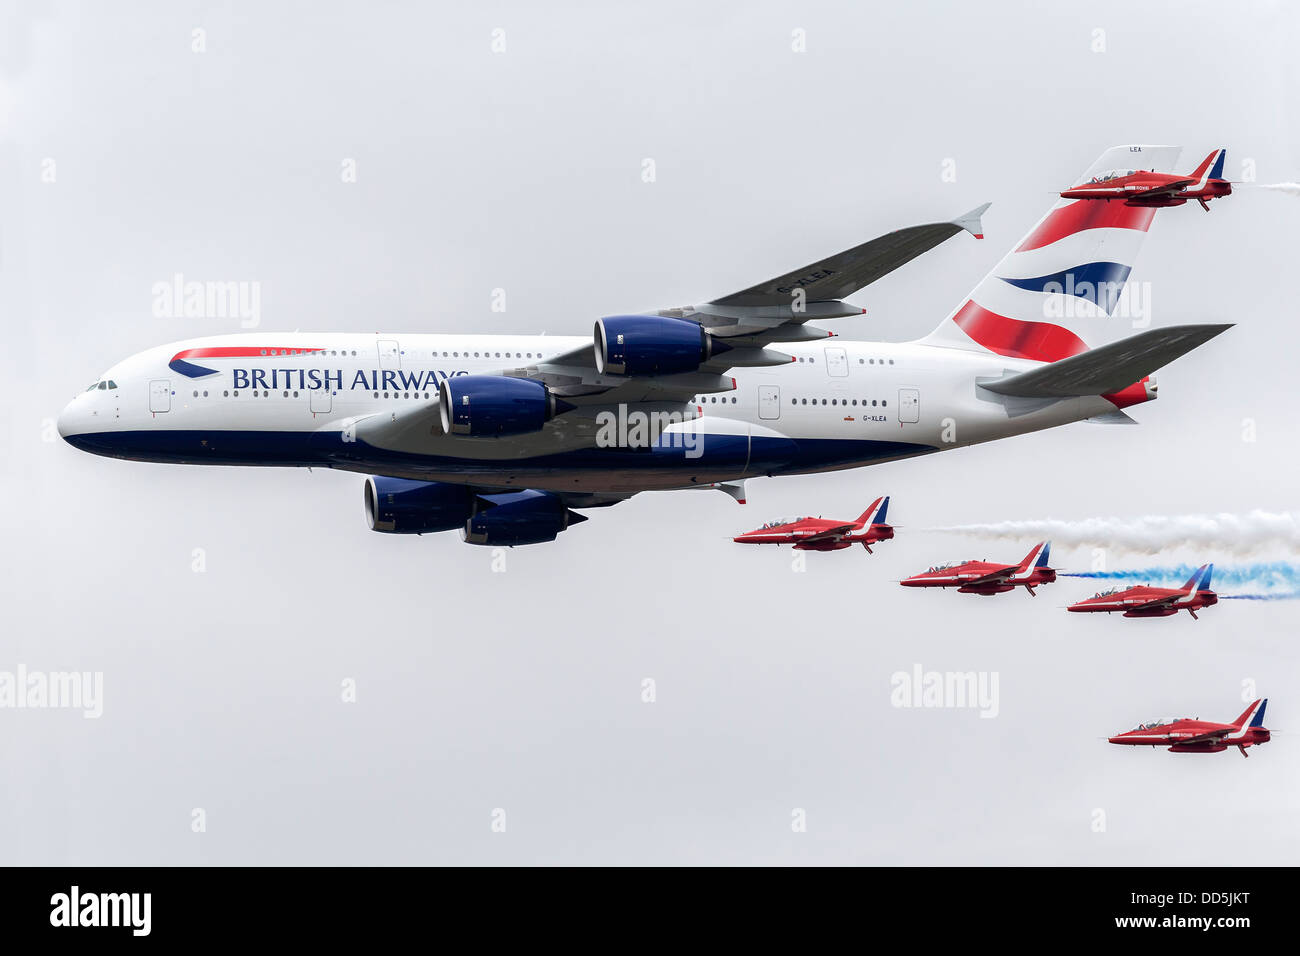 Red Arrows aerobatic team in formation with a BA A380 super jumbo - RIAT 2013 - Stock Image